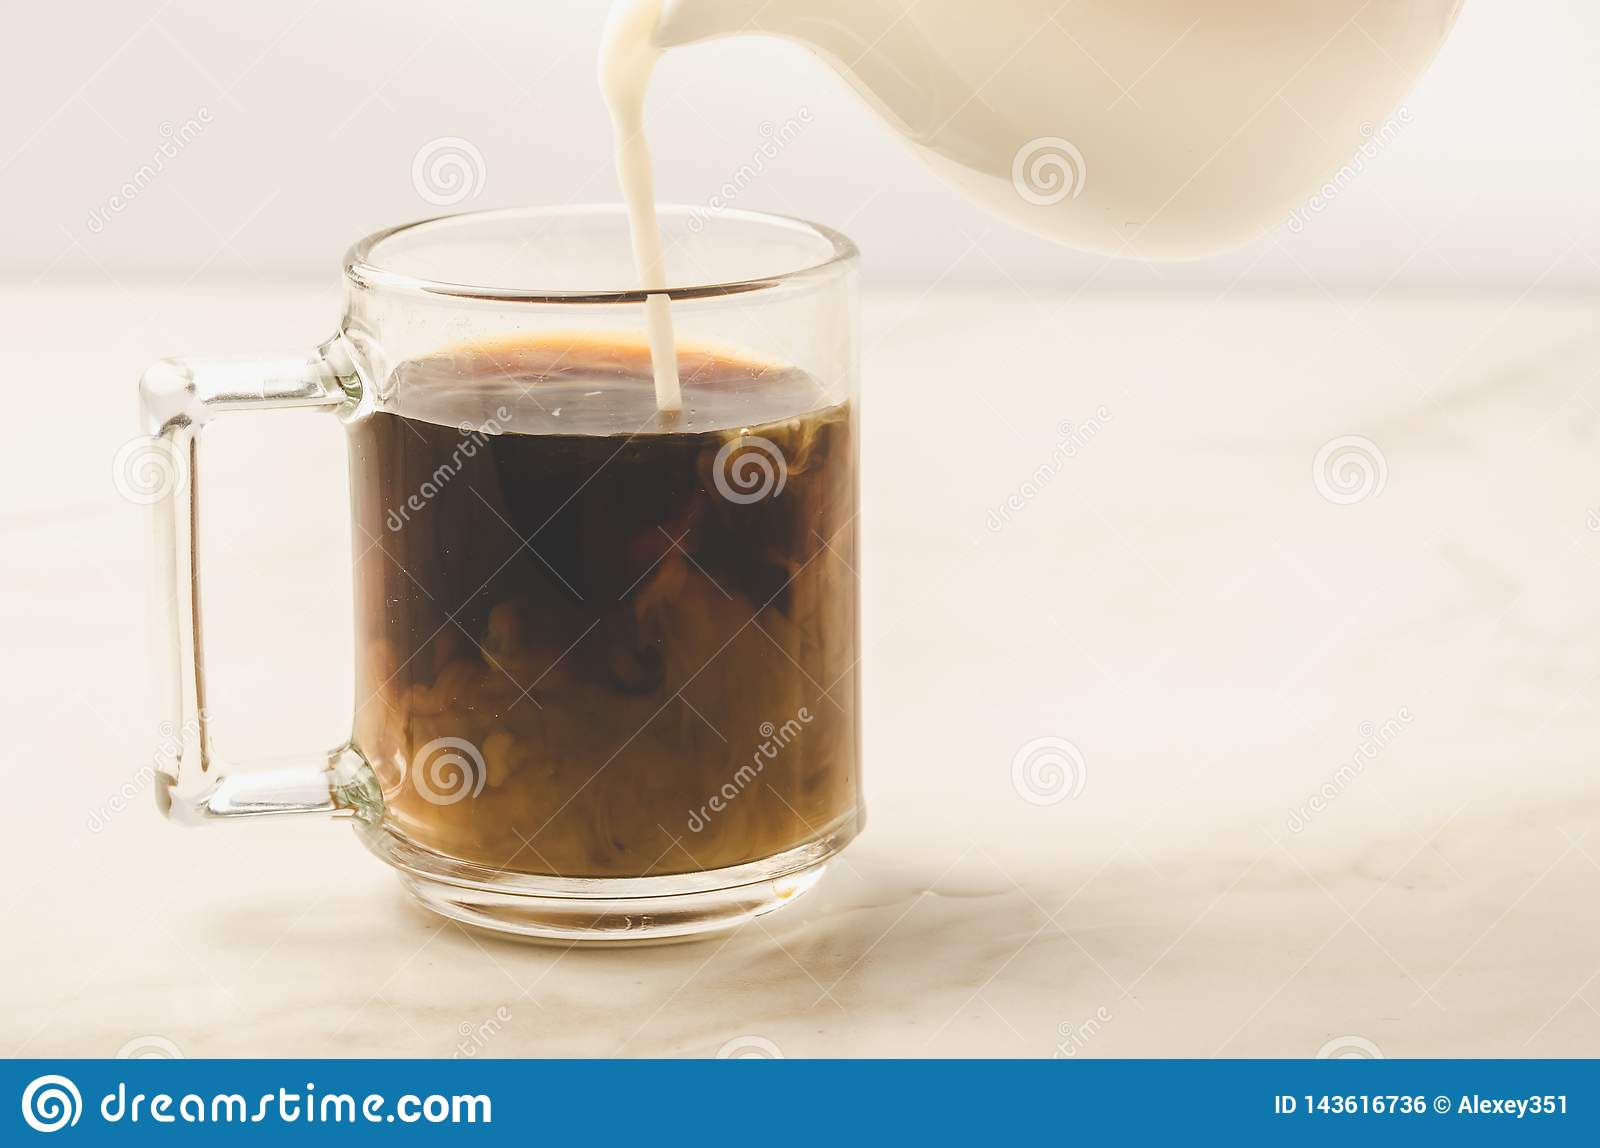 Milk is added to coffee glass/milk is added to coffee glass on white marble background. Selective focus